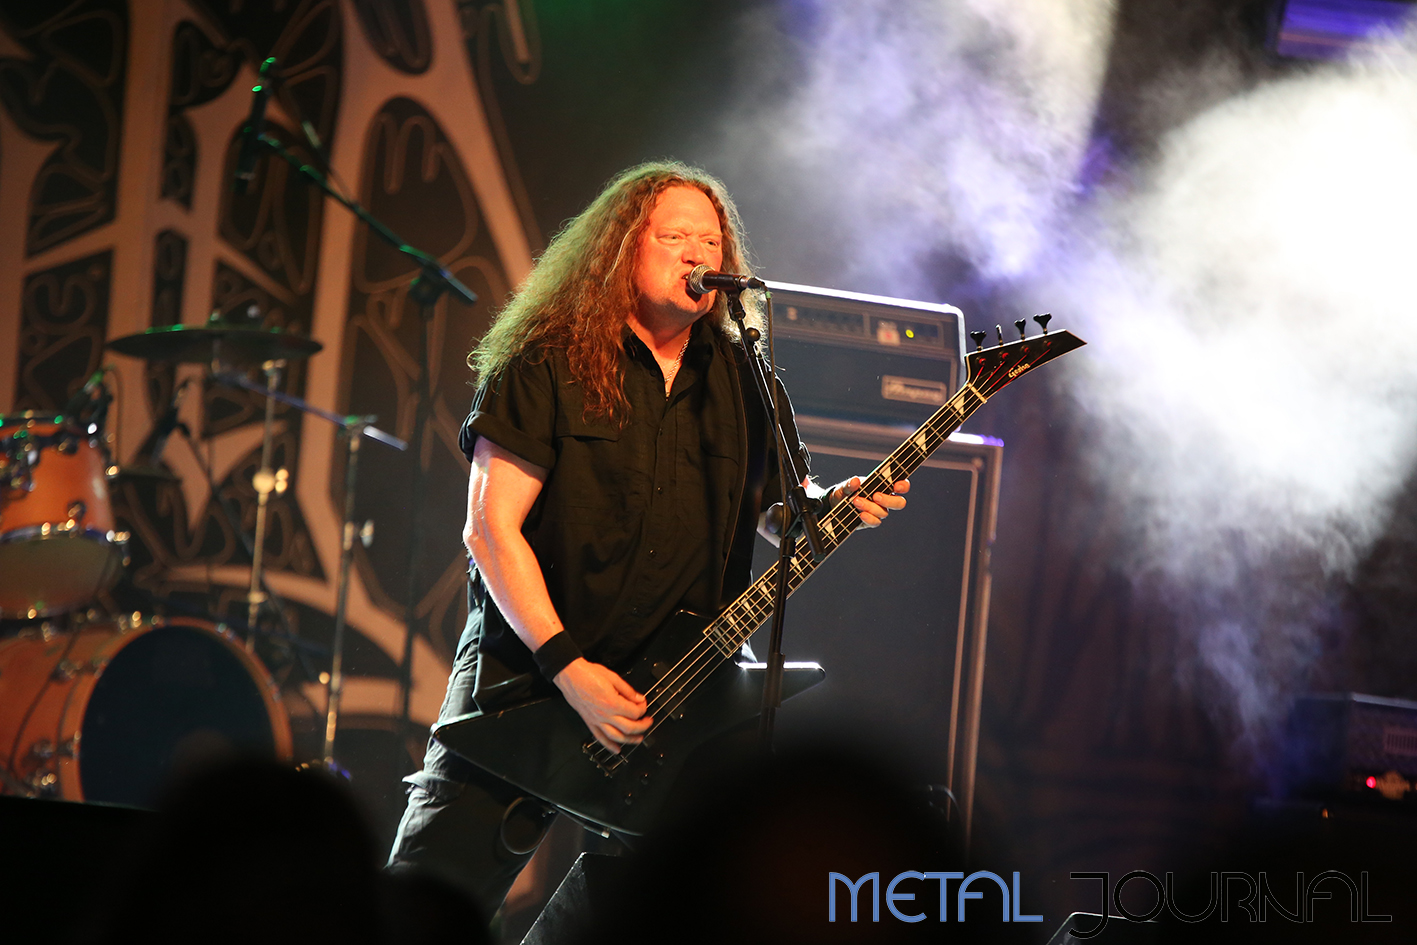 unleashed - leyendas del rock 2019 metal journal pic 5